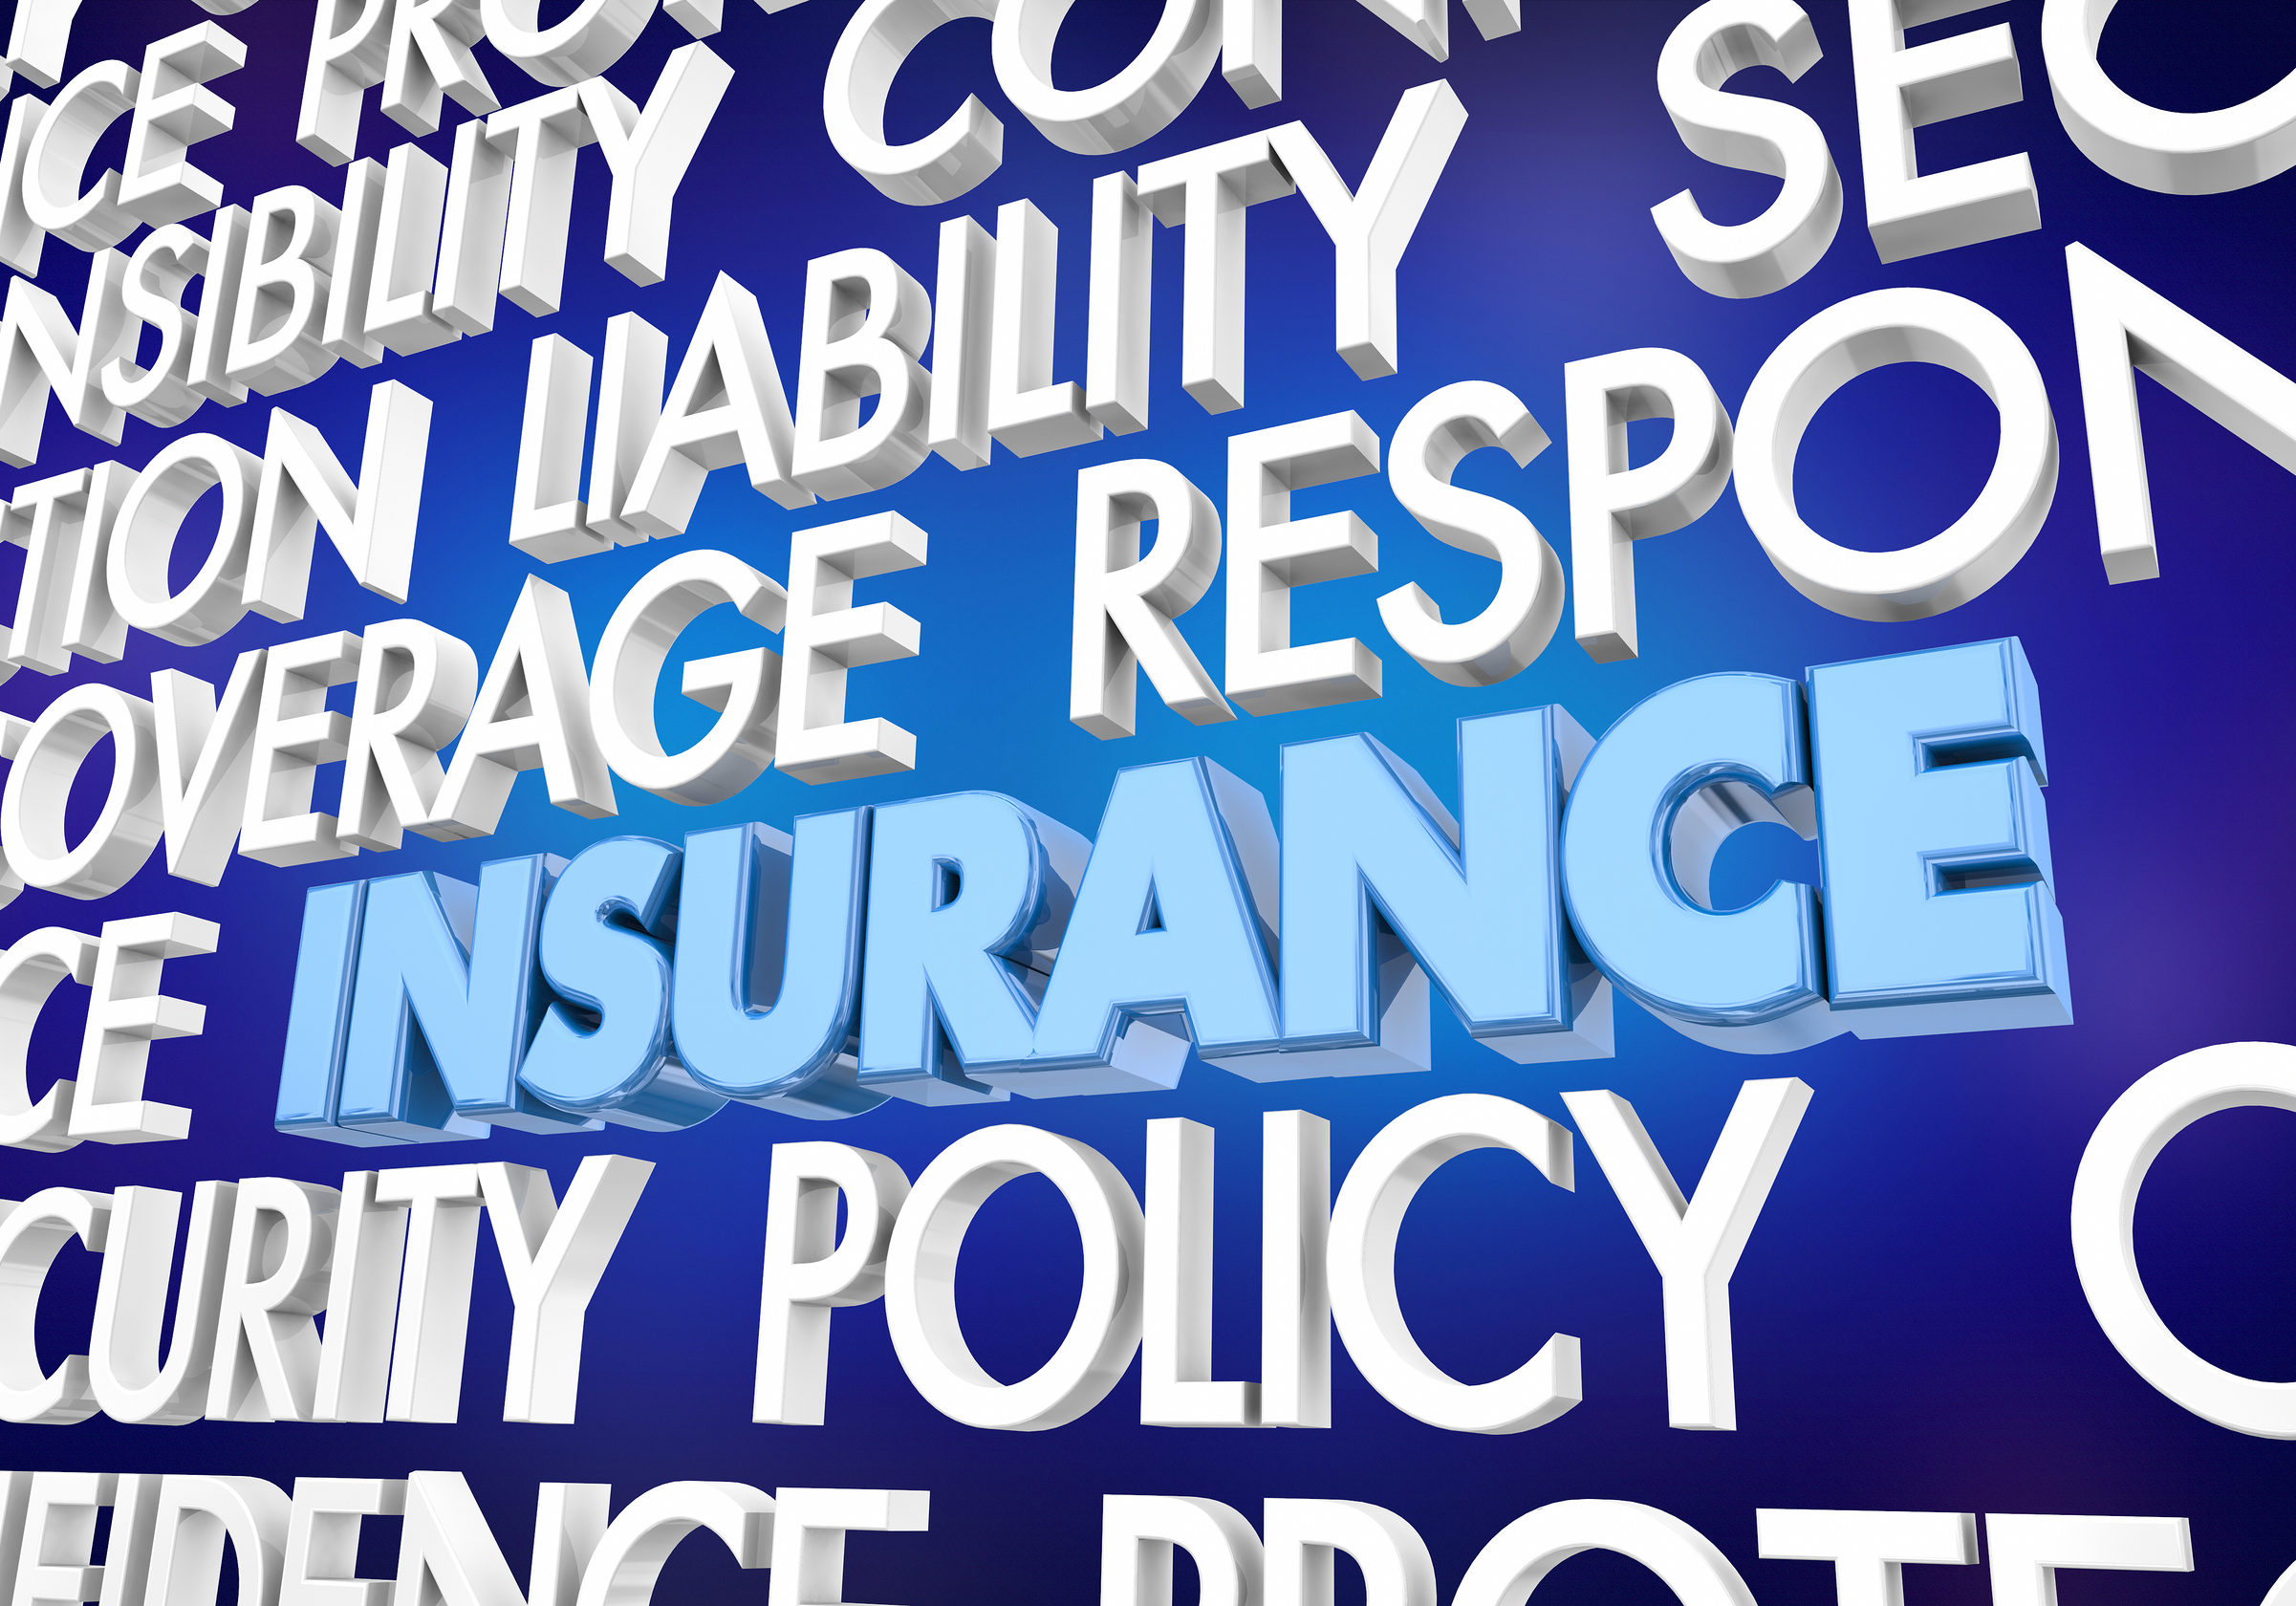 Insurance Coverage Policy Security Protection Word Collage 3d Illustration